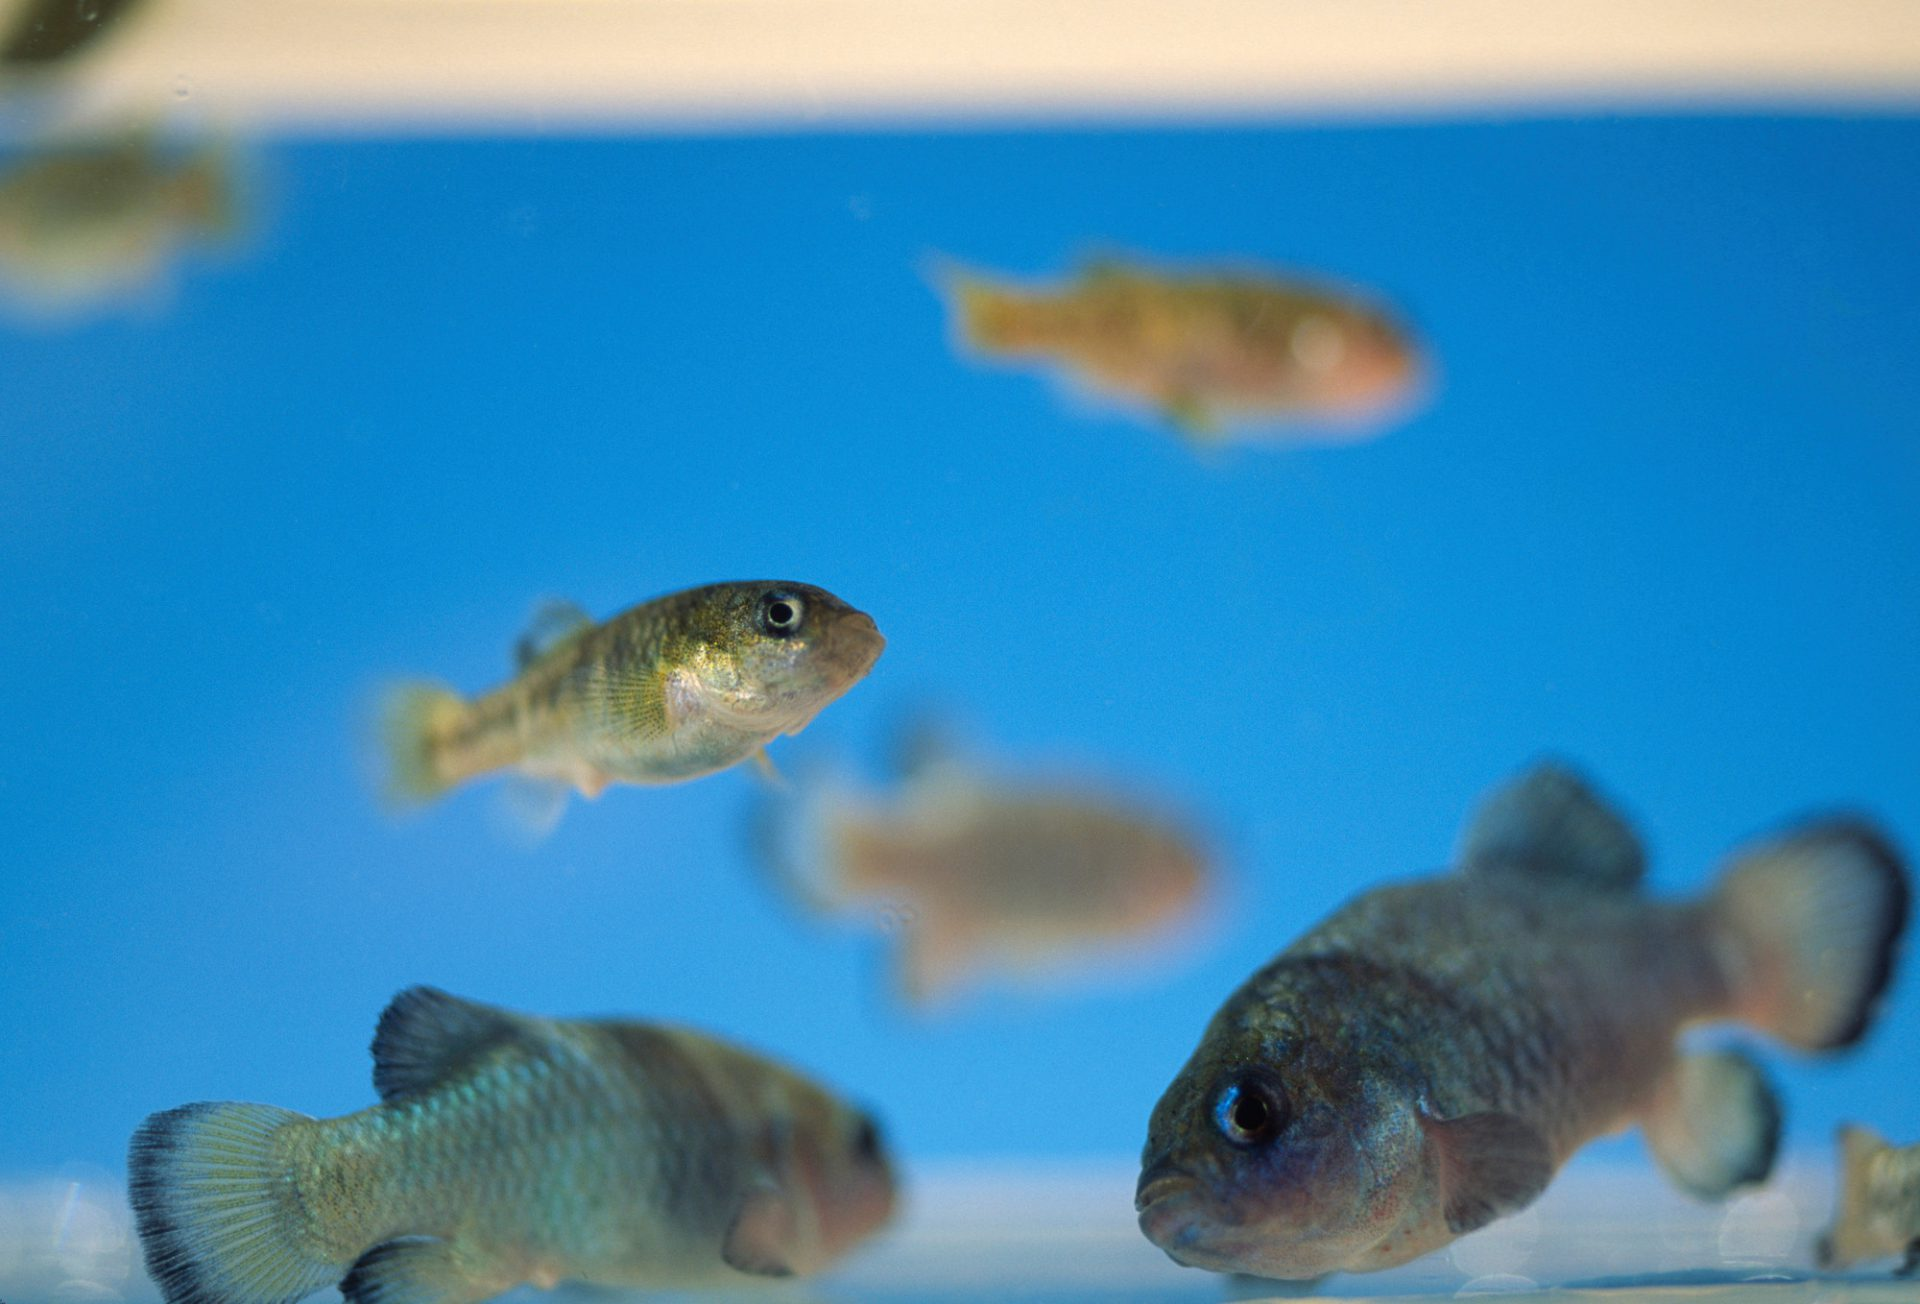 Photo: The endangered Devil's Hole pupfish, captive at Ash MeadowsNWR.